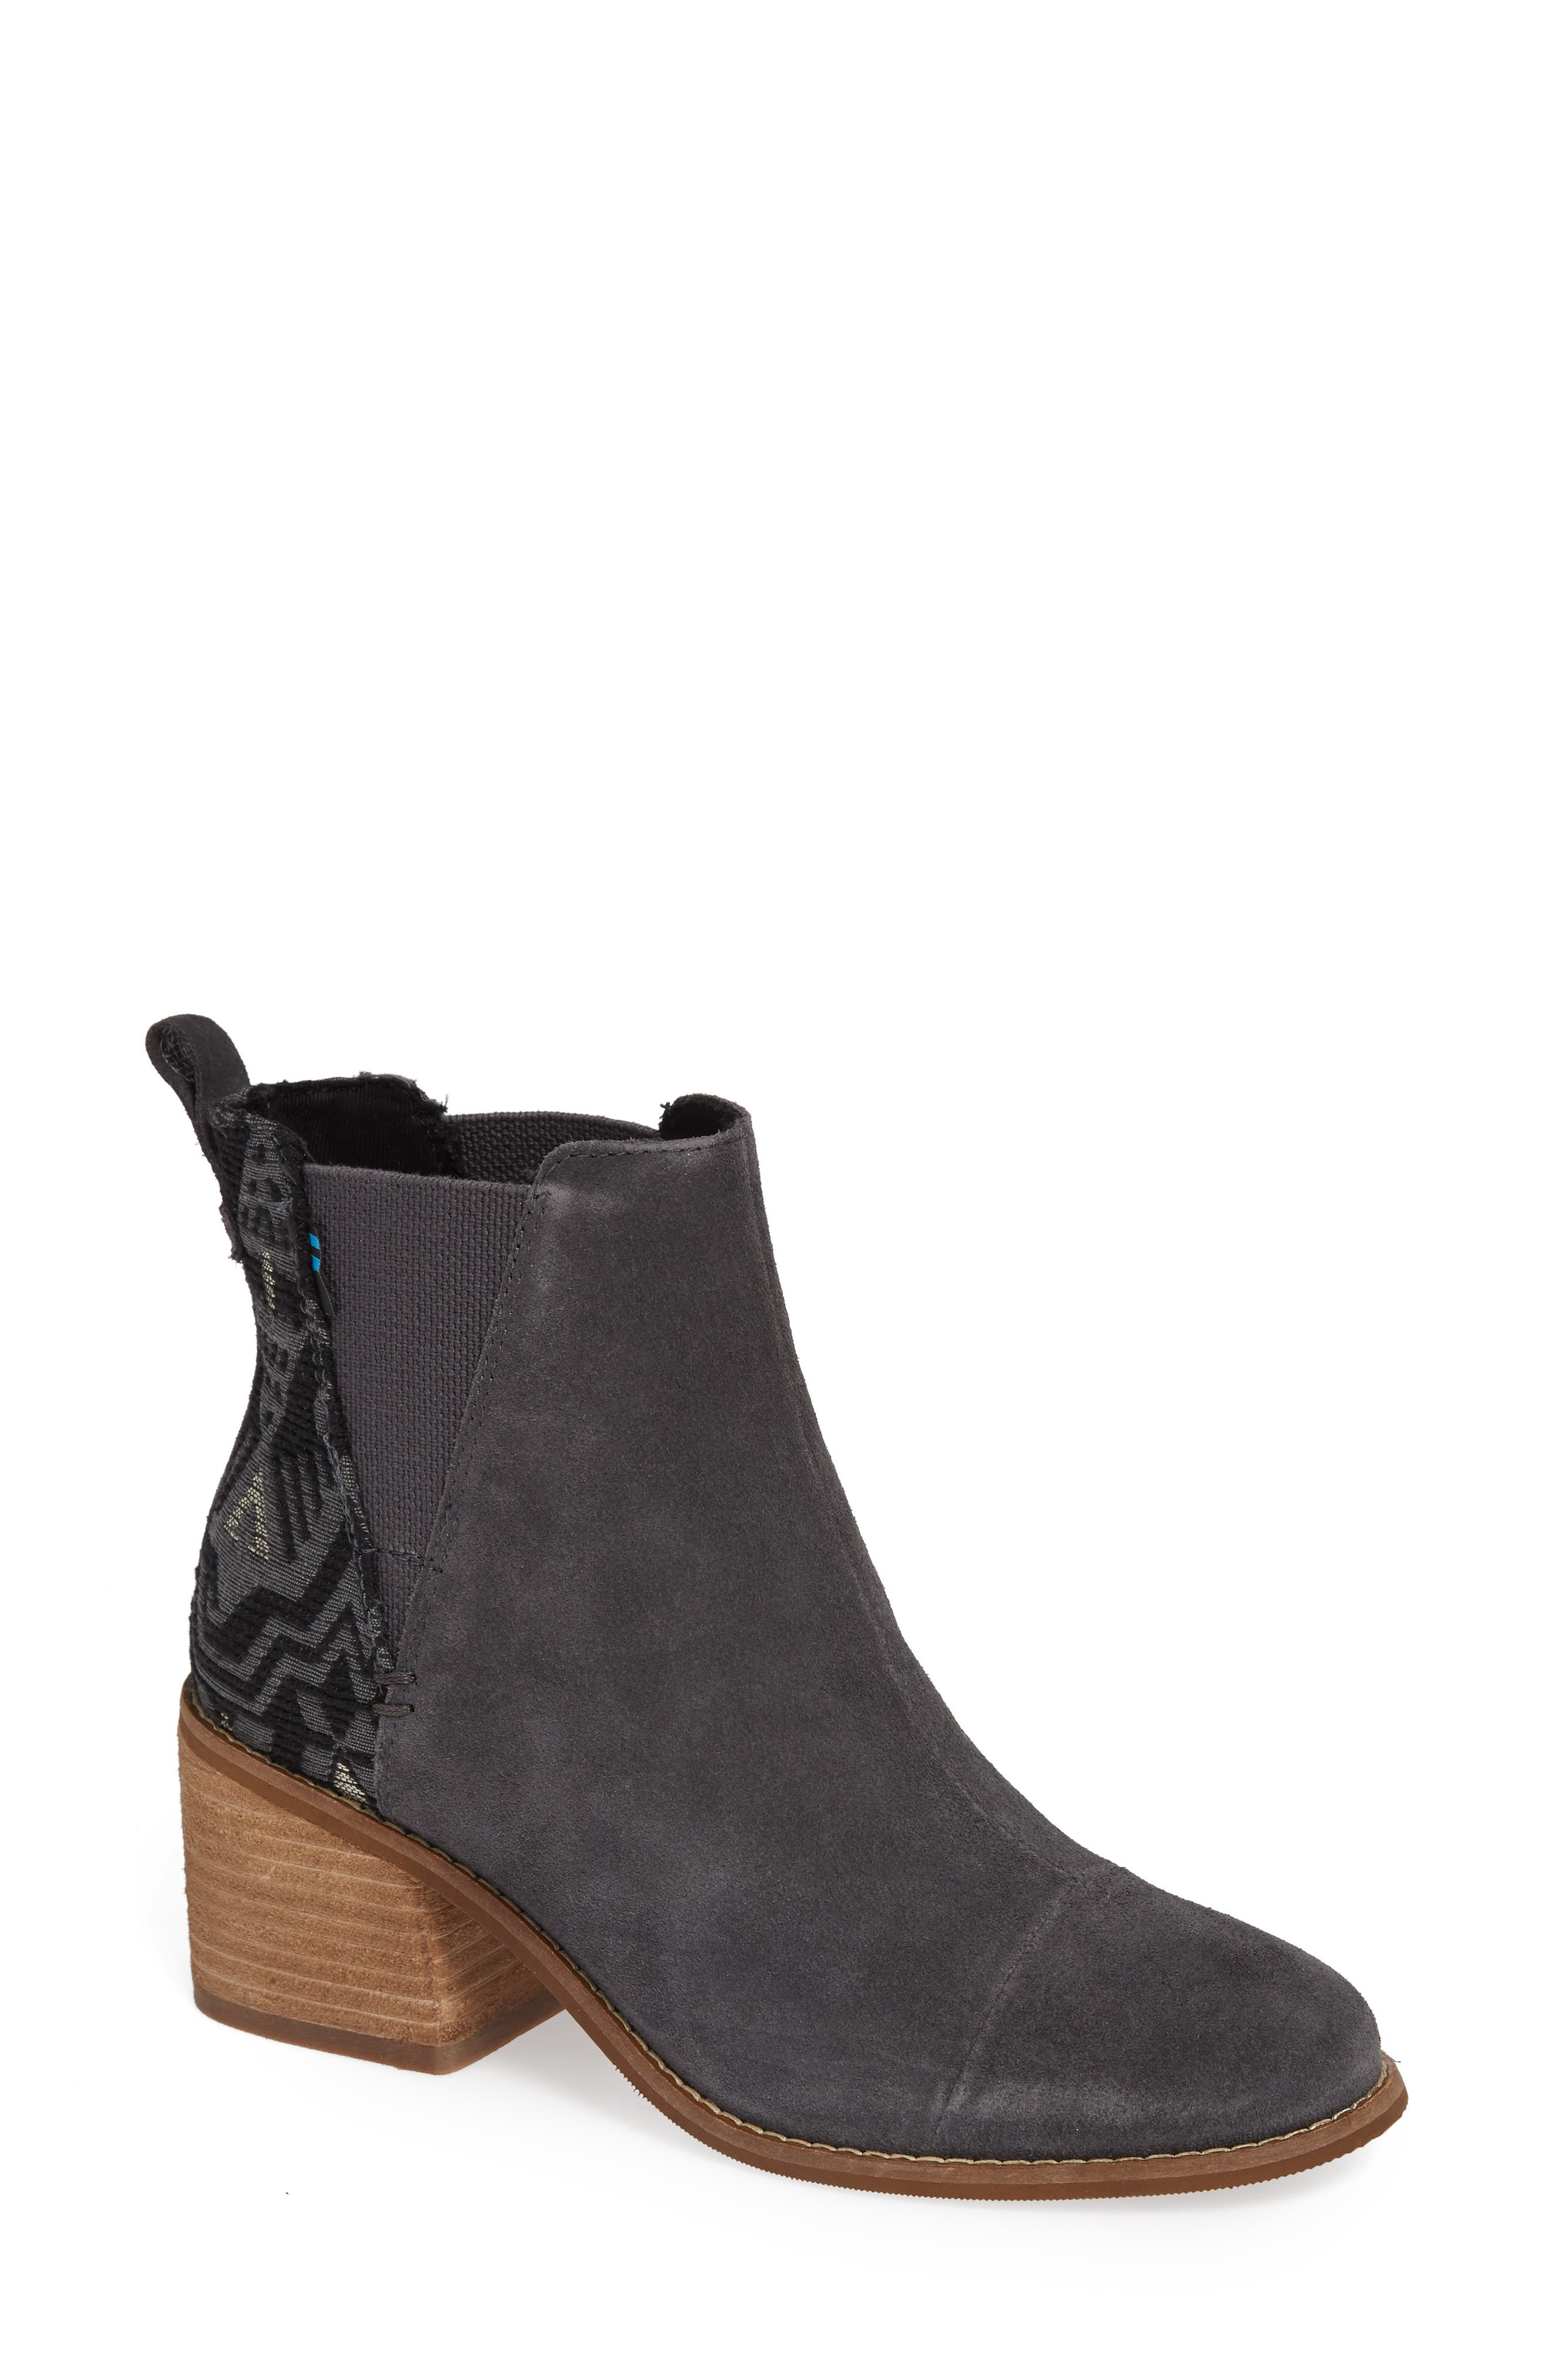 Esme Bootie,                             Main thumbnail 1, color,                             FORGED IRON SUEDE